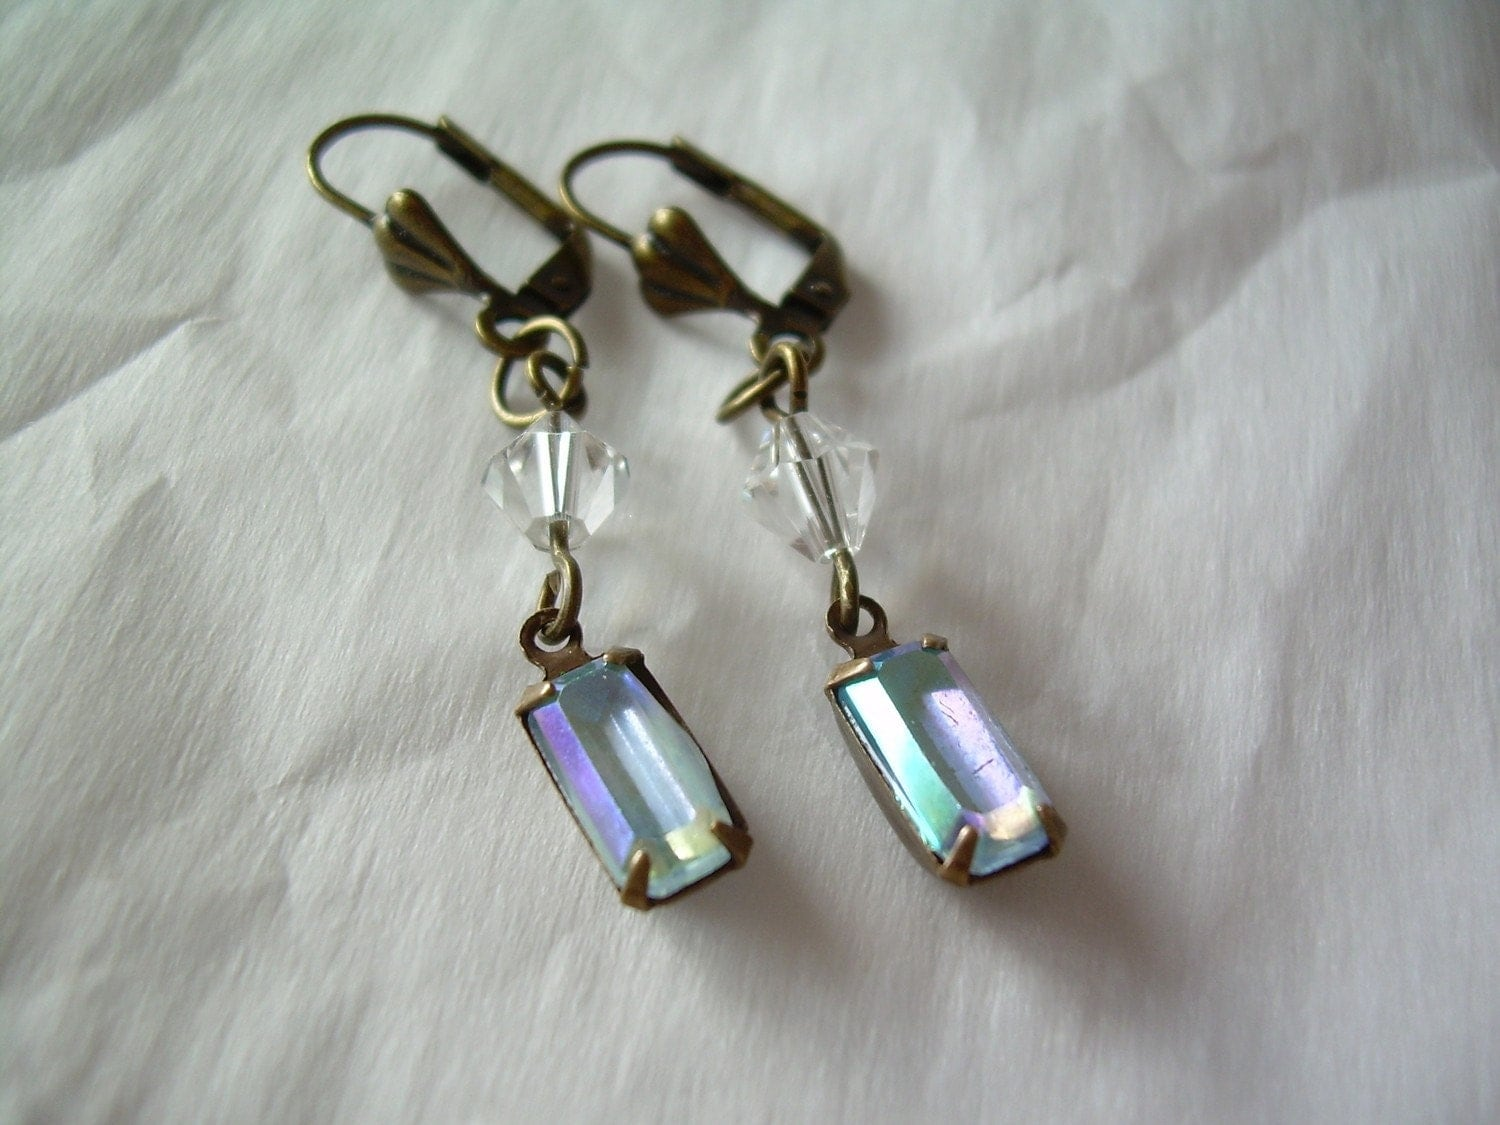 Vintage Inspired Iridescent Drop Earrings